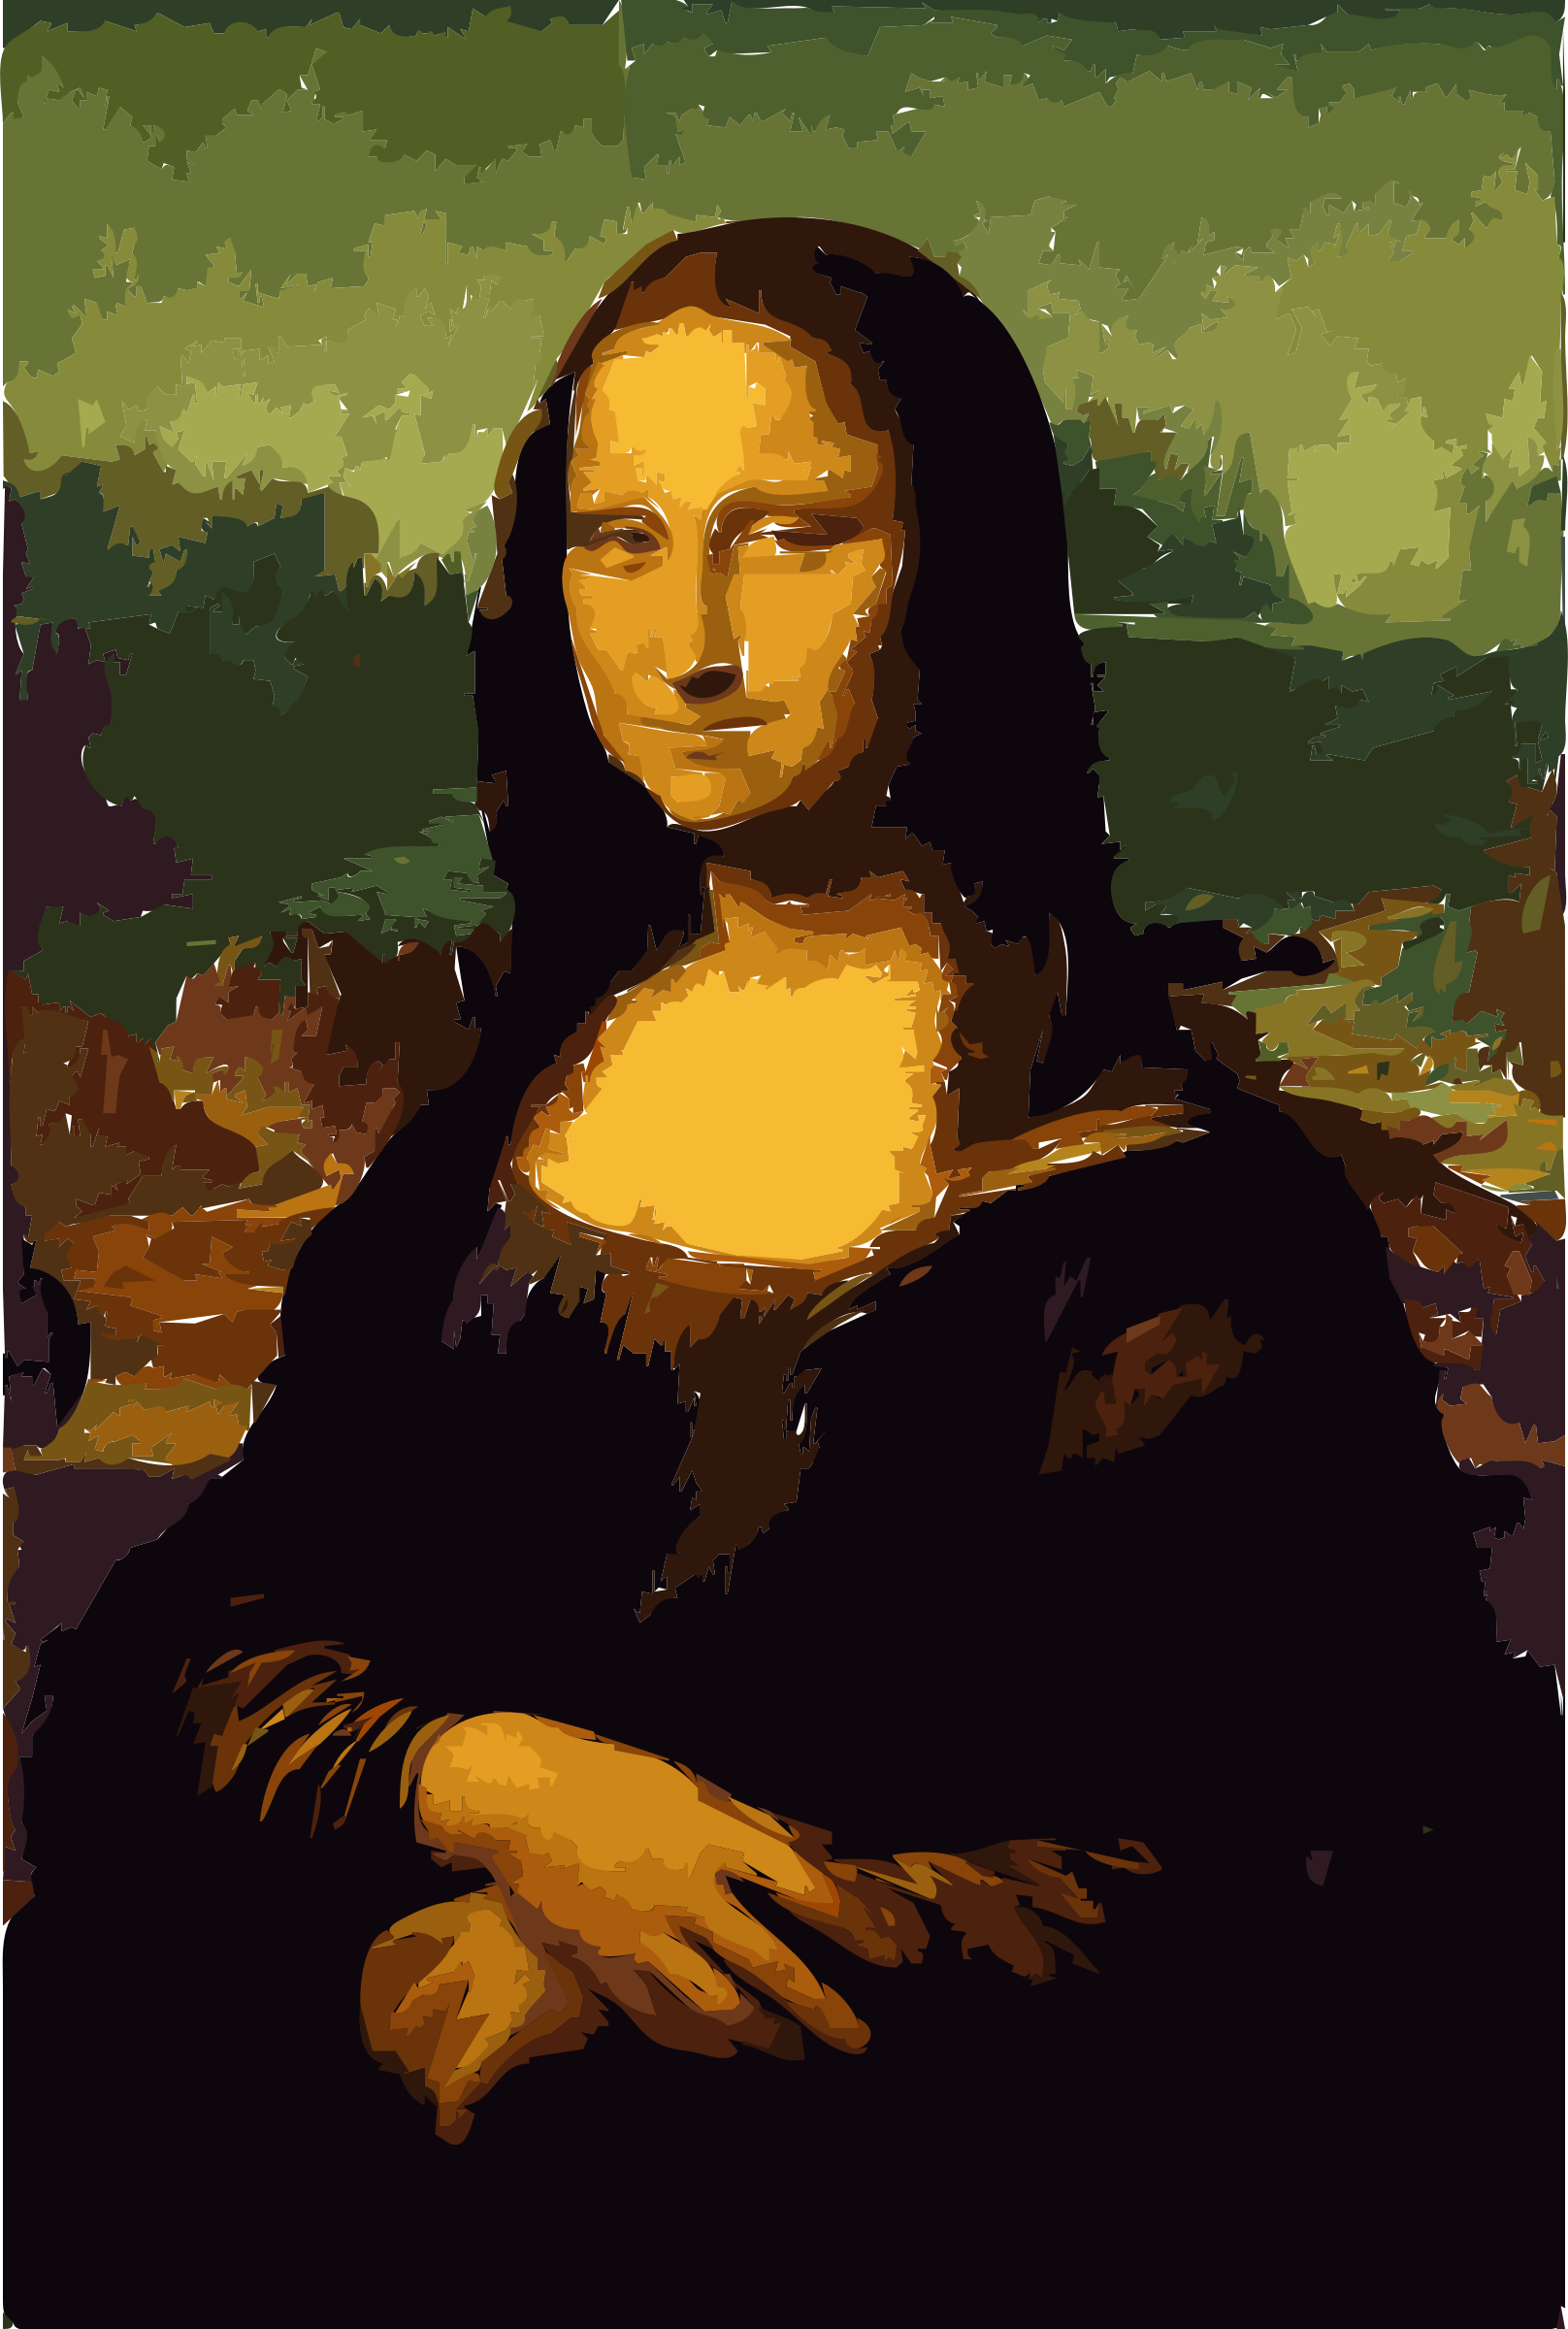 Here is another New Mona Lisa Painting by rejon